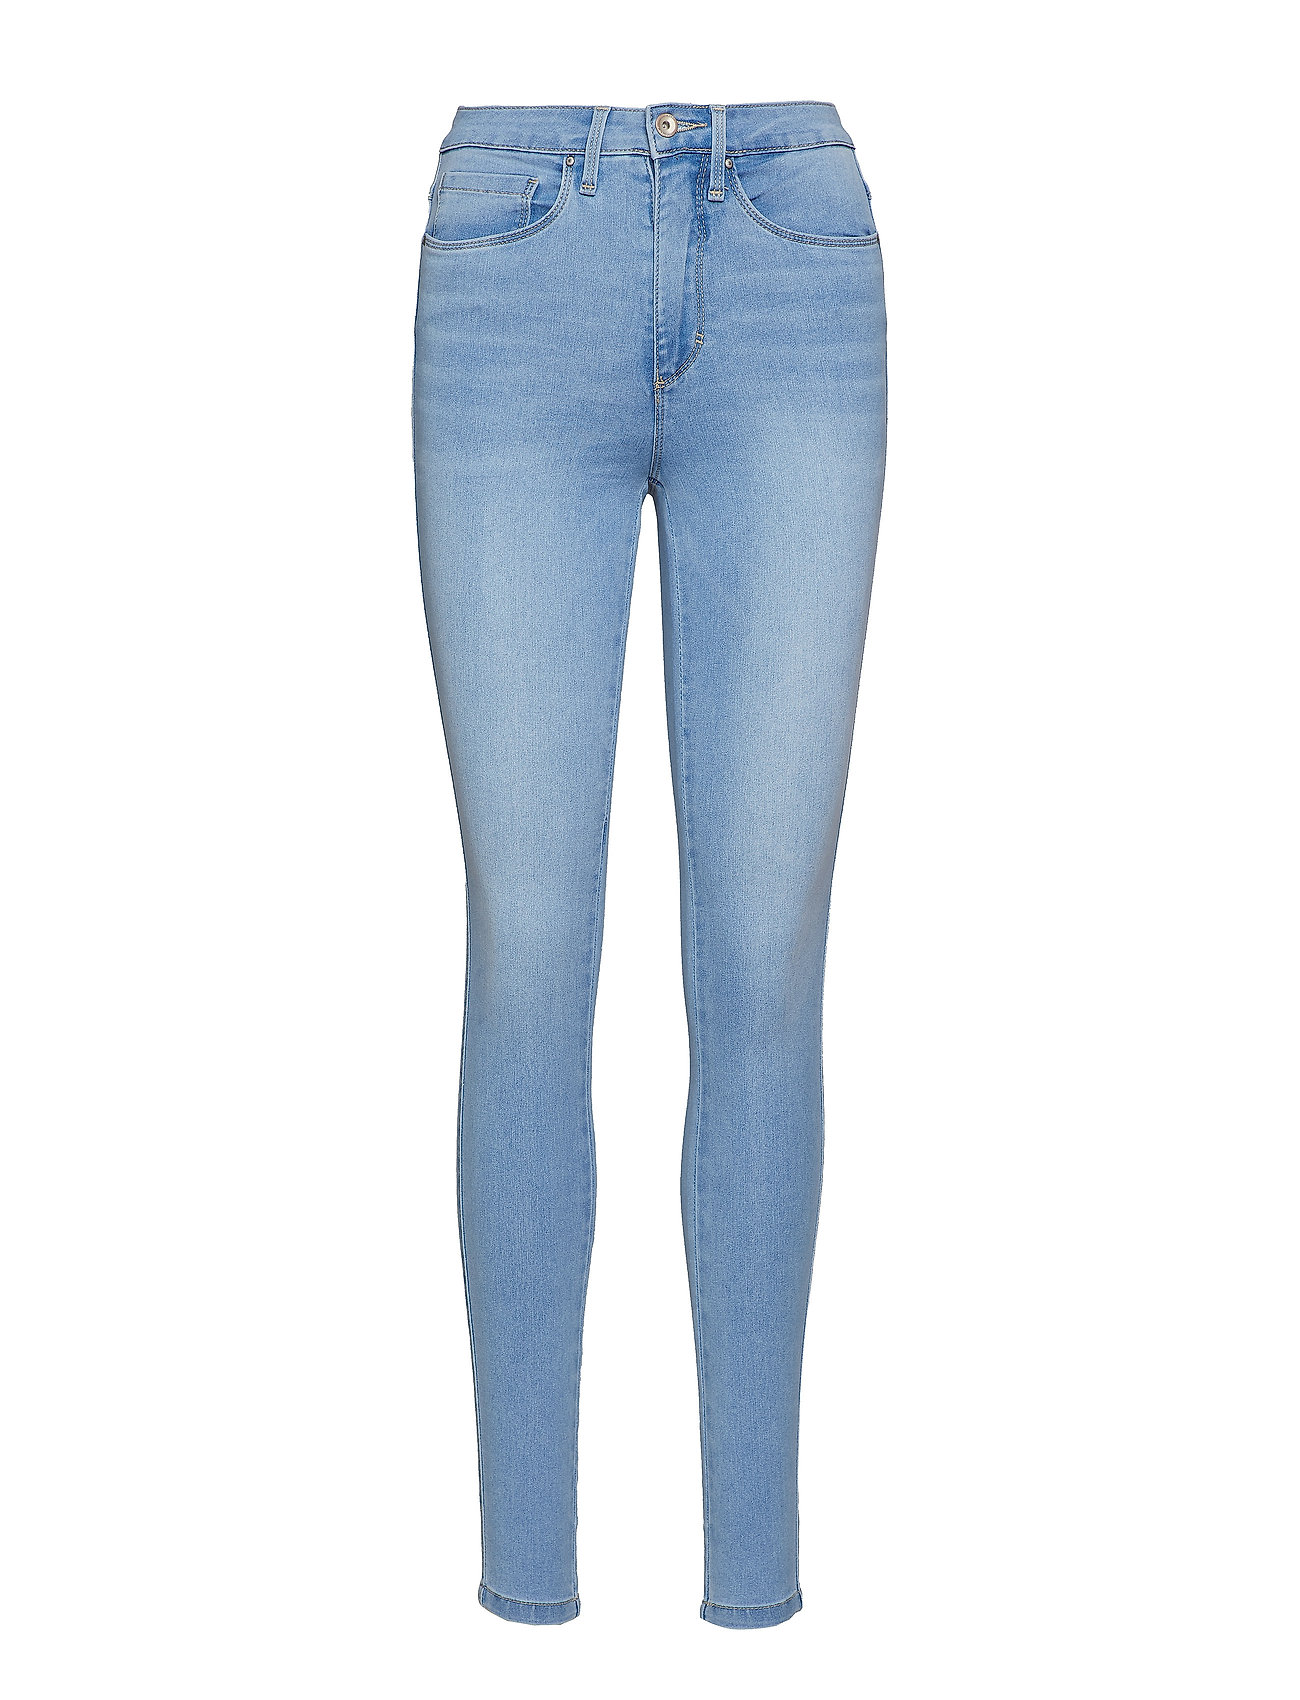 ONLY onlROYAL HW SK JEANS BB BJ13333 NOOS Jeans